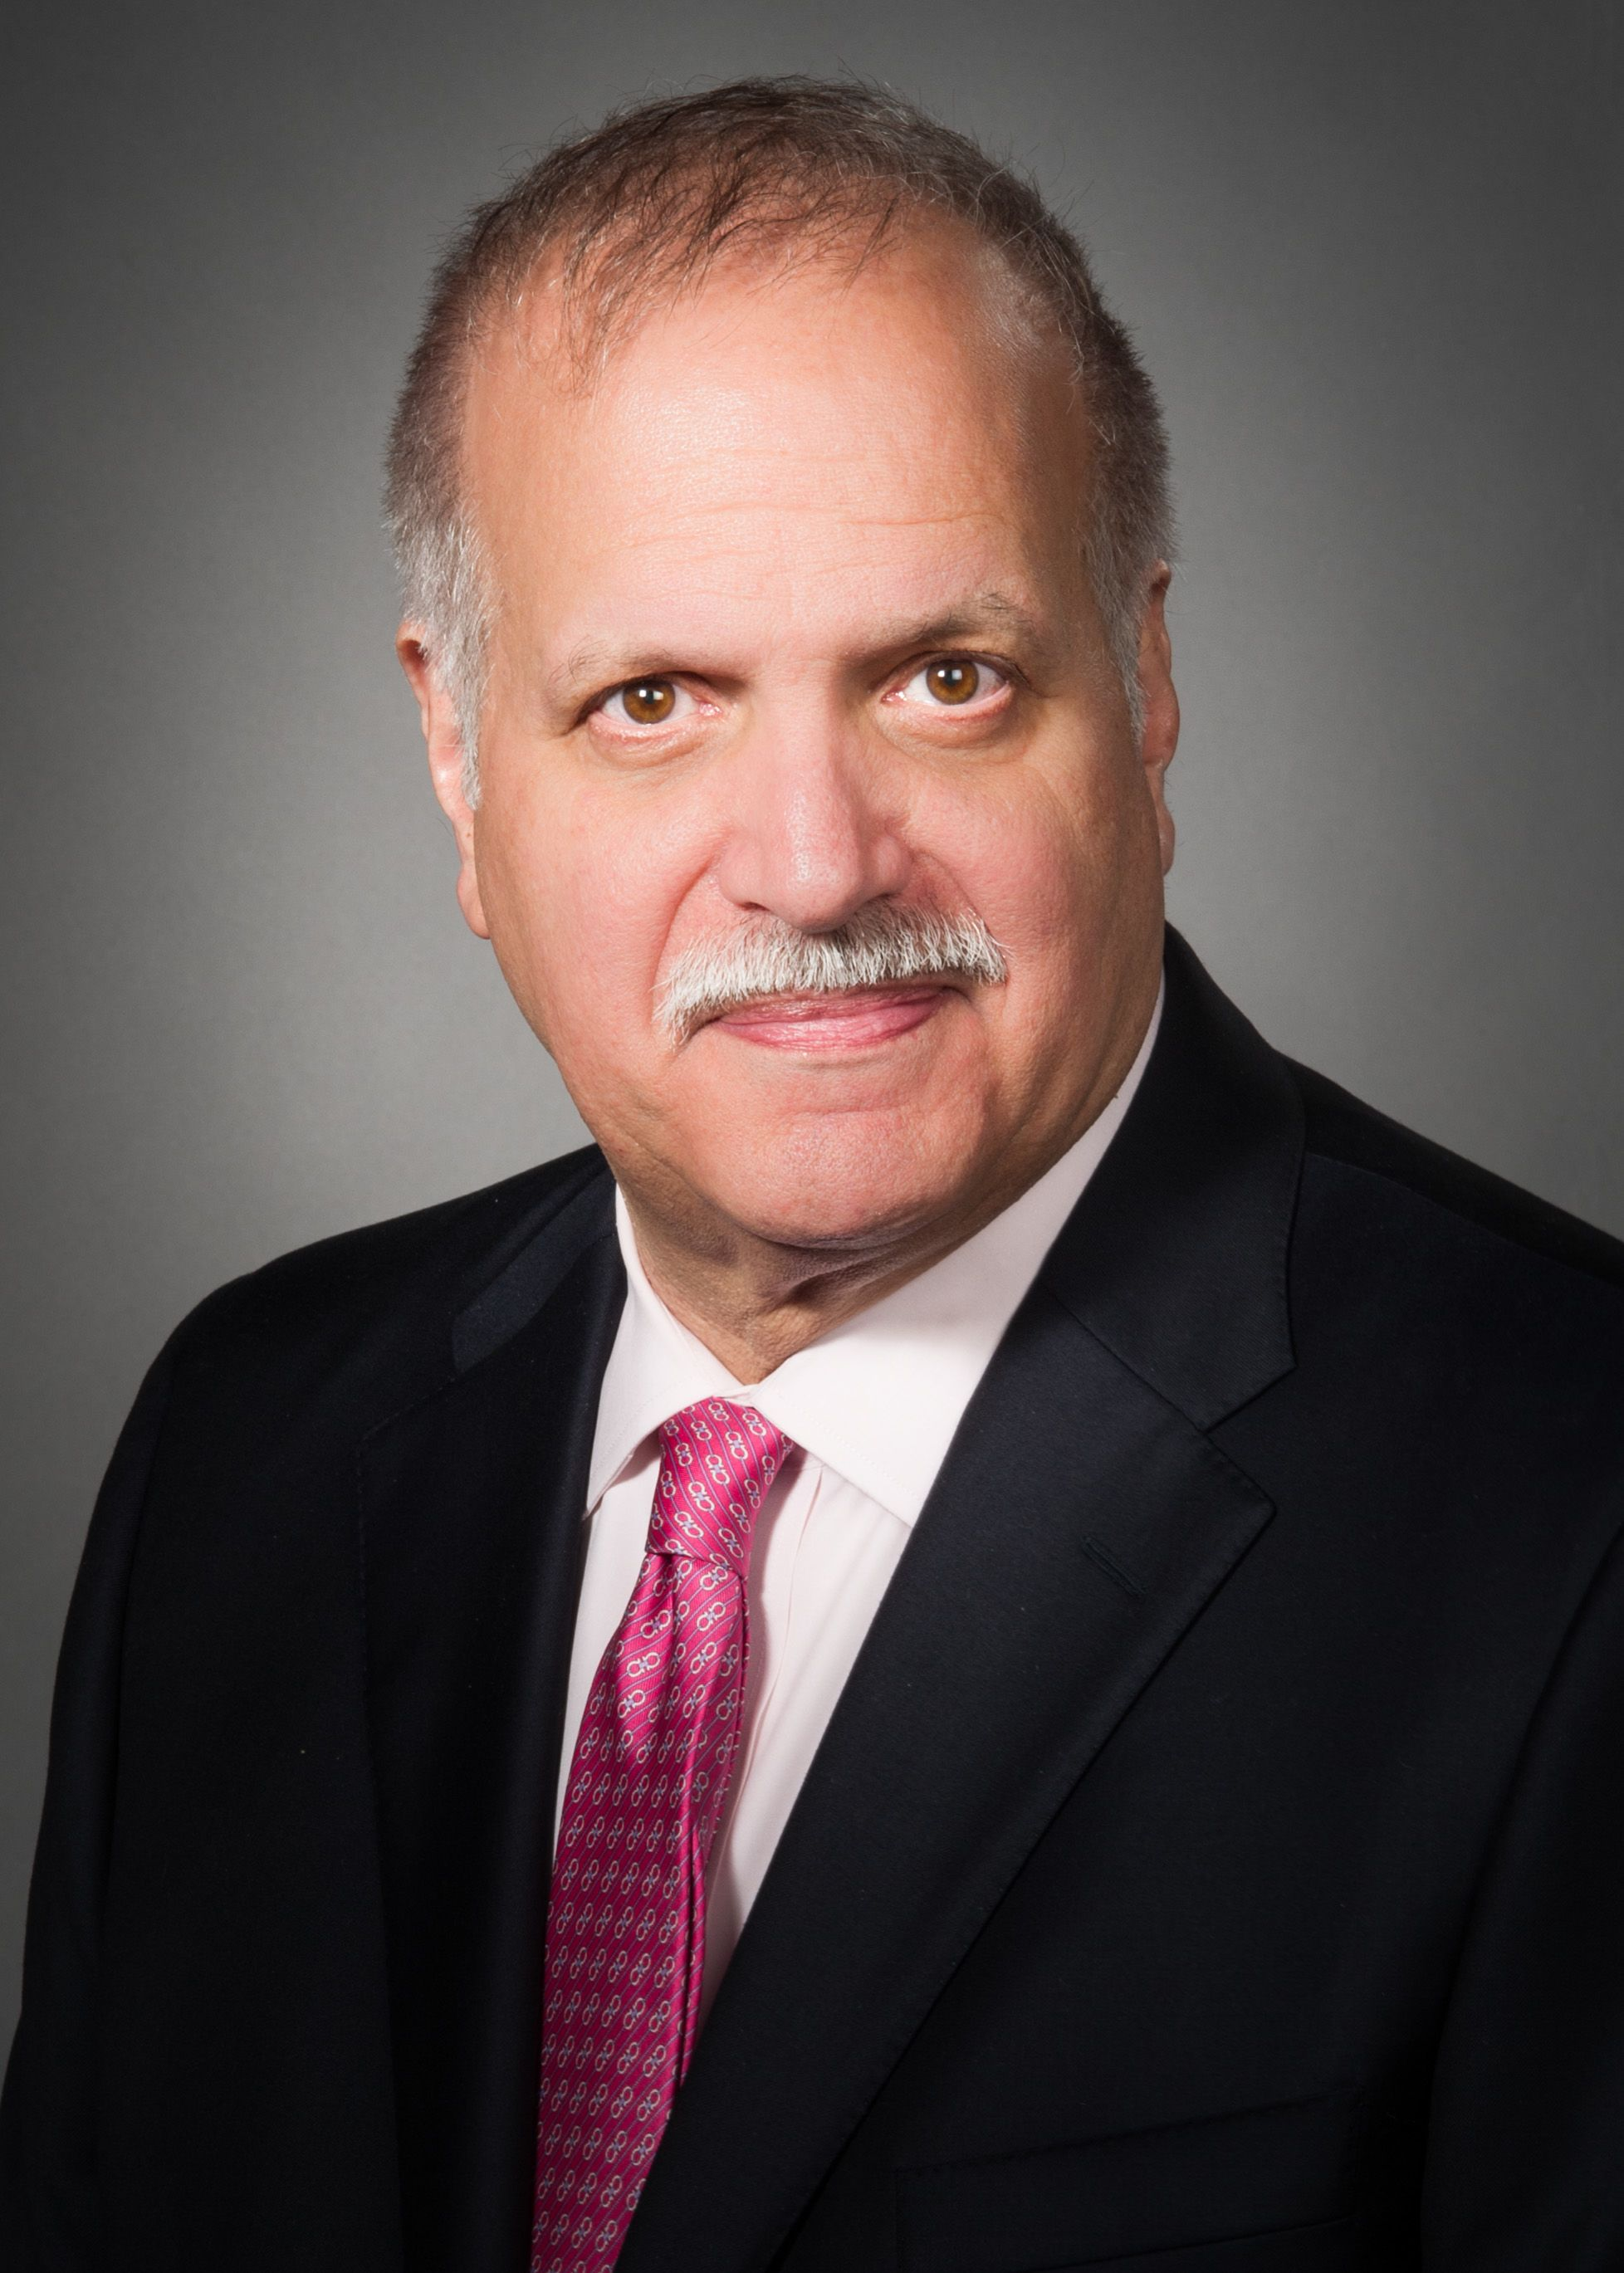 Peter Bruno, MD, wearing a black suit and a red tie